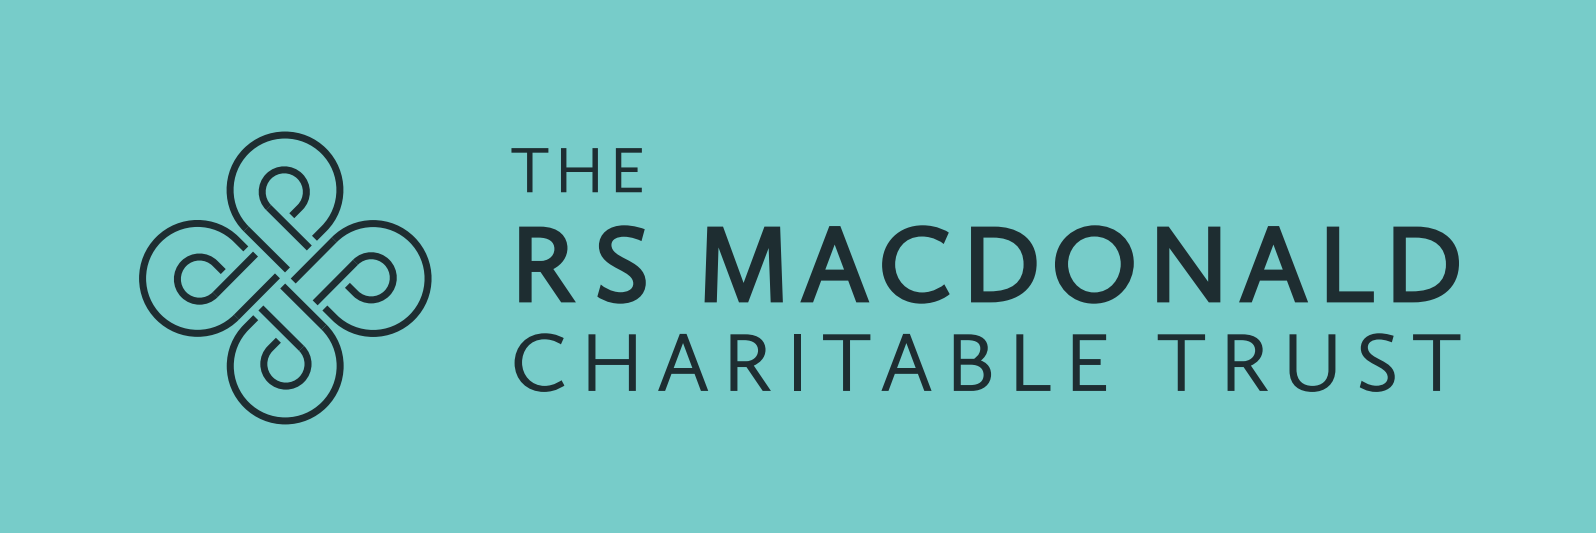 RS MacDonald Charitable Trust logo